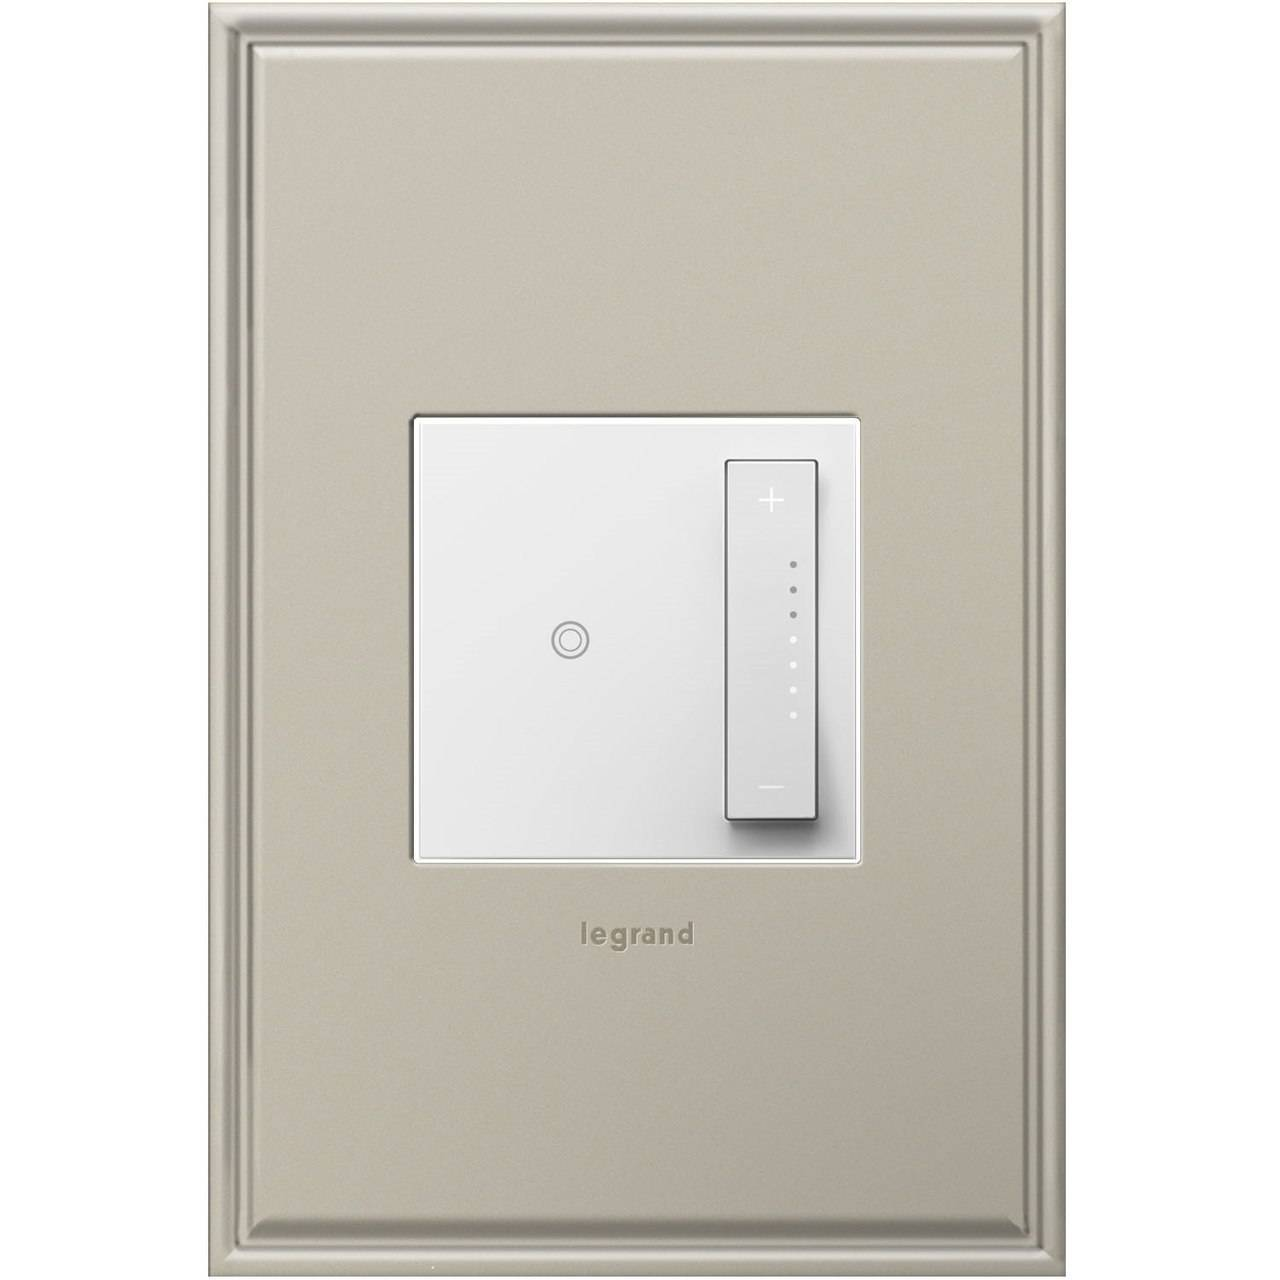 Legrand adorne softap wi-fi ready master switch for lighting control system